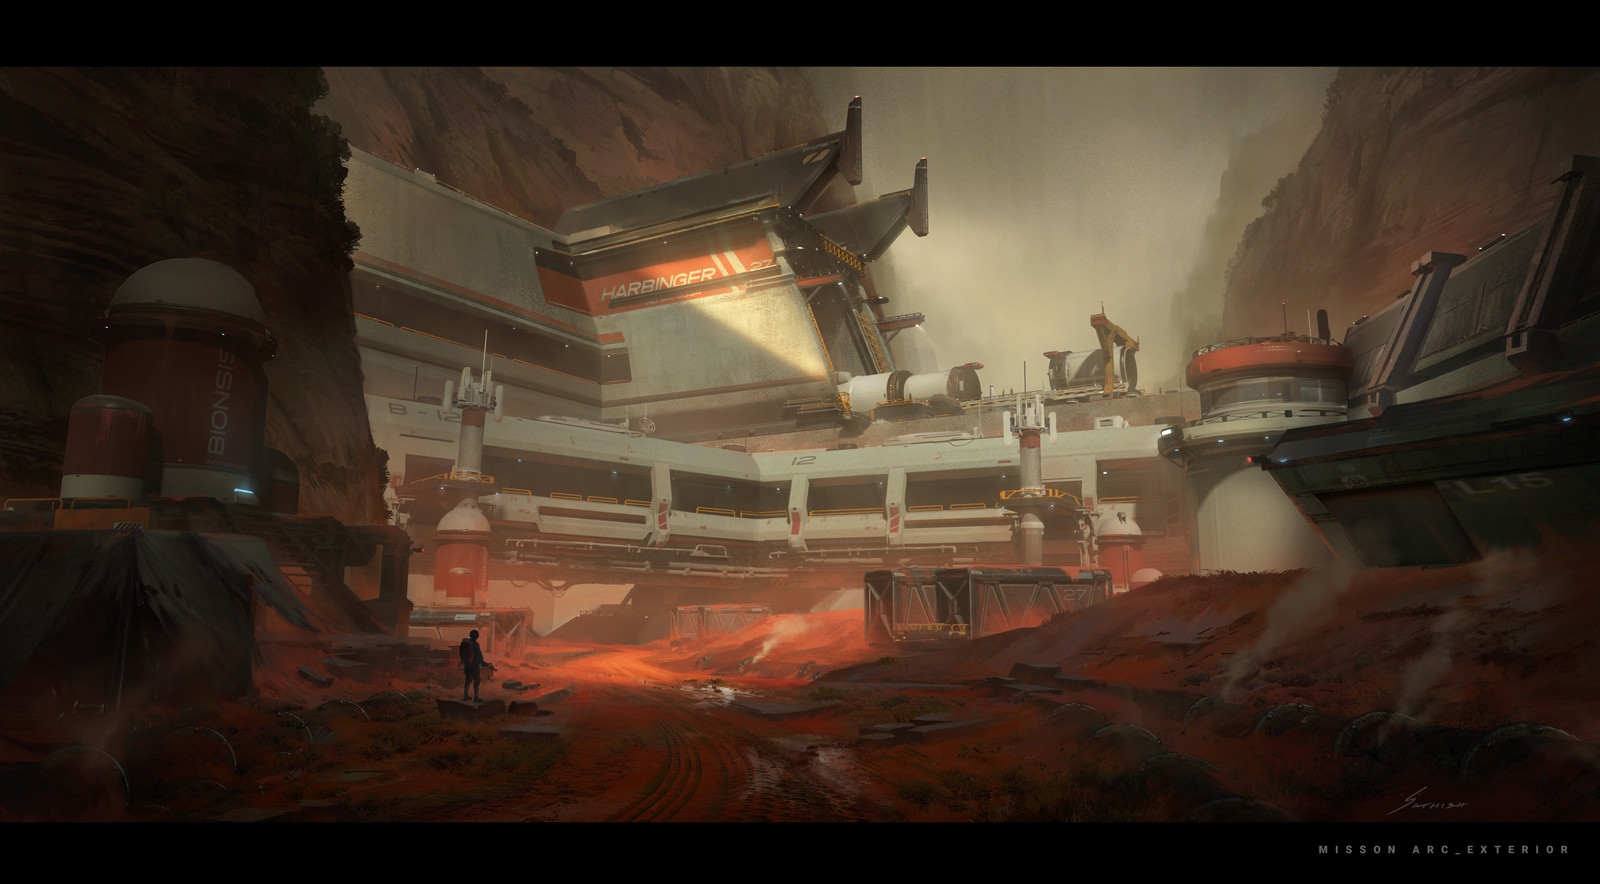 MISSION ARC_EXTERIOR ENV DESIGN